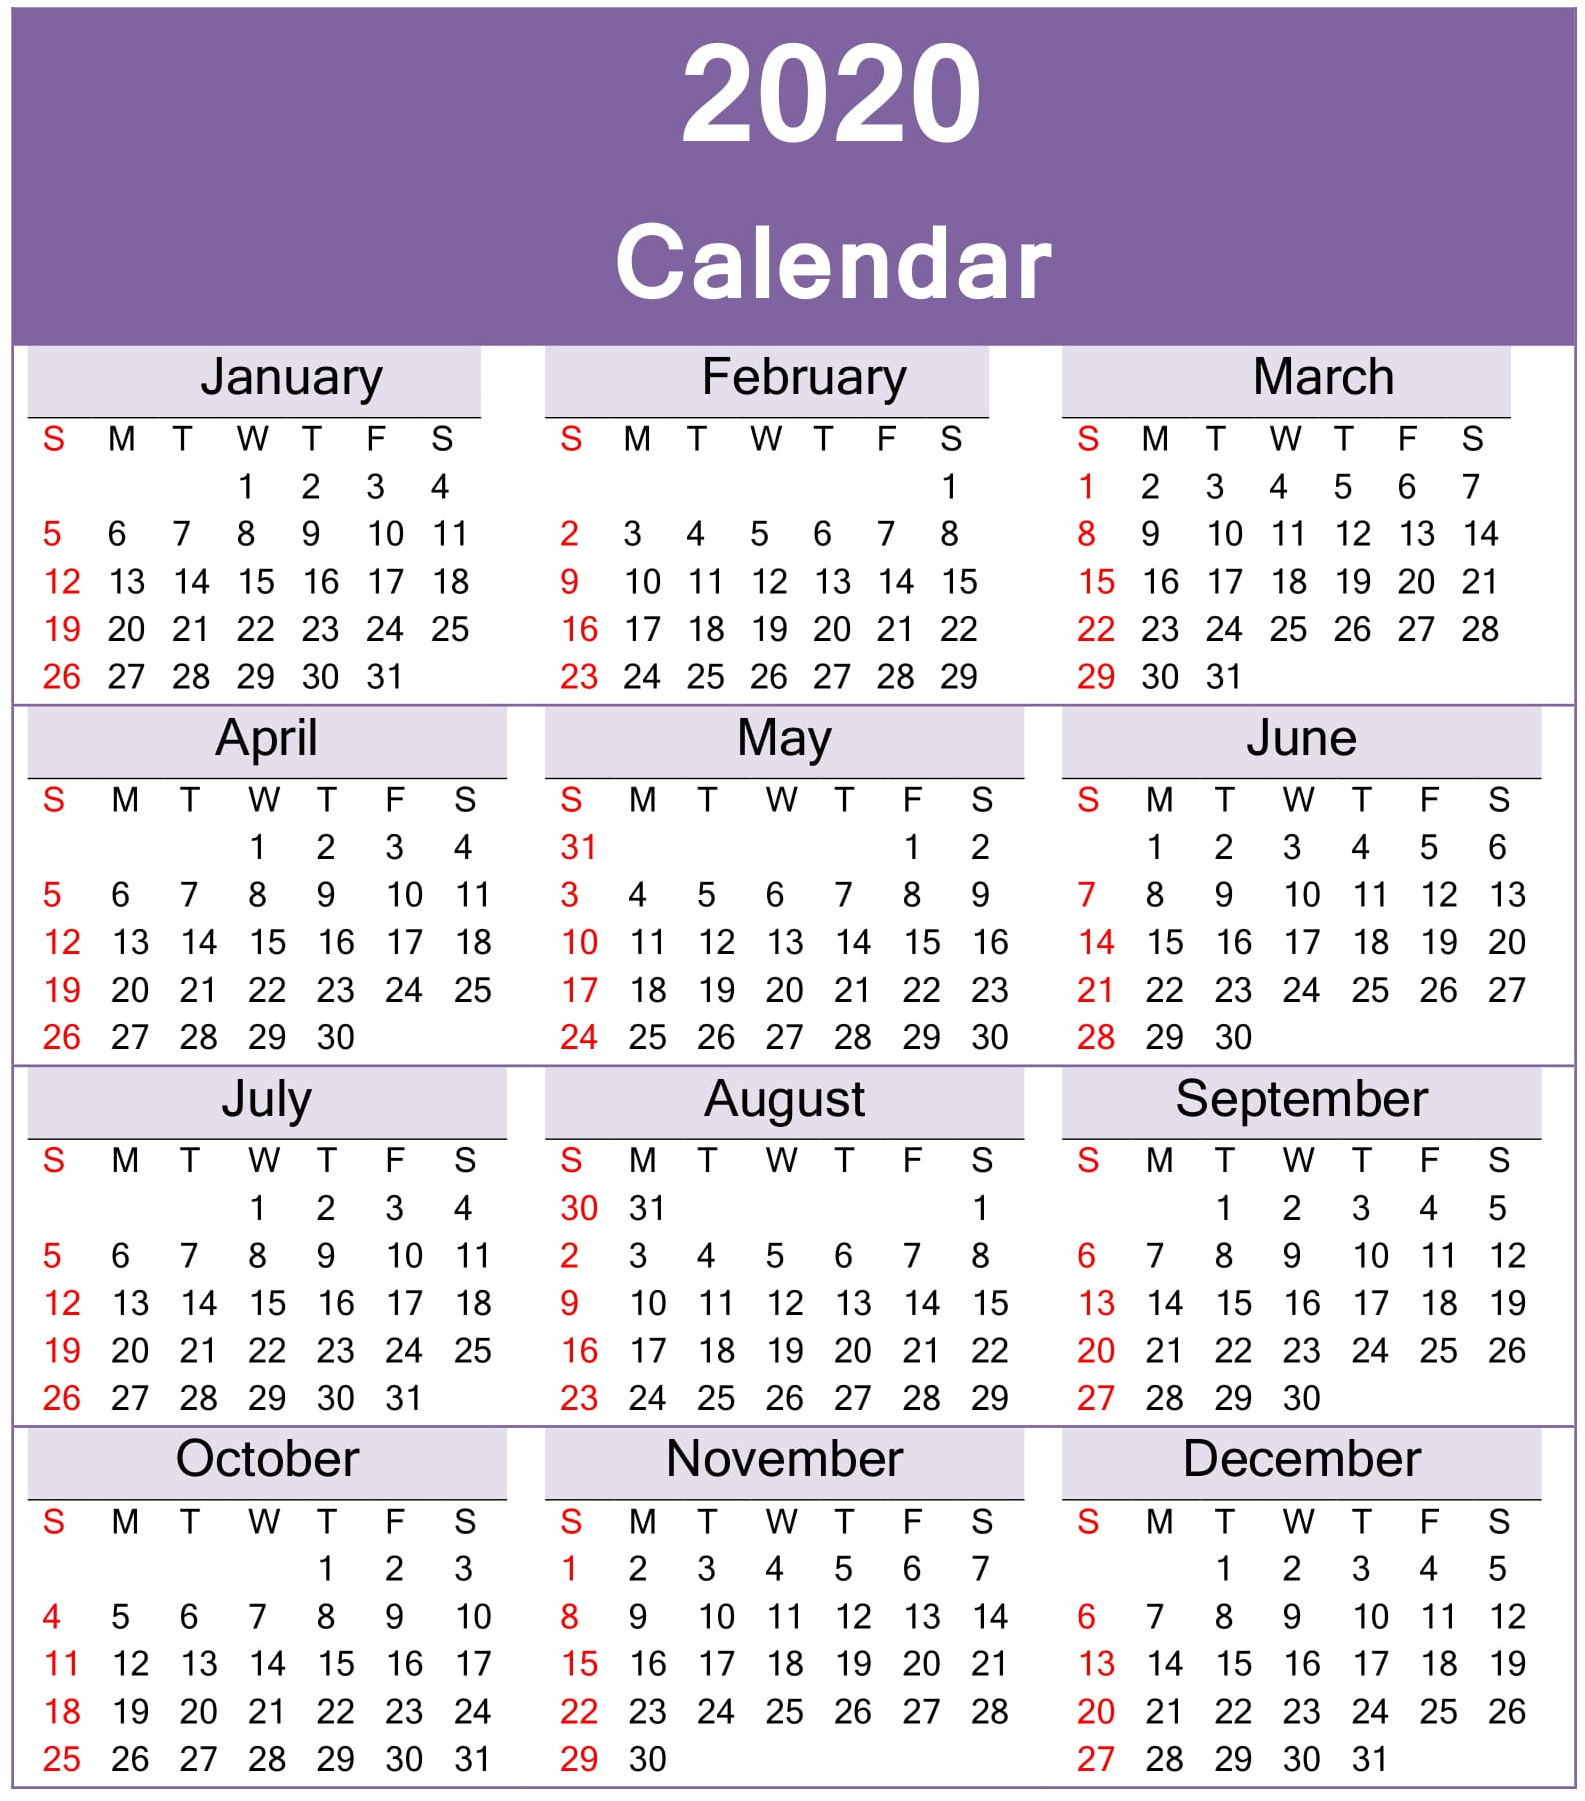 Calendar 2020 Yearly Printable Images 363